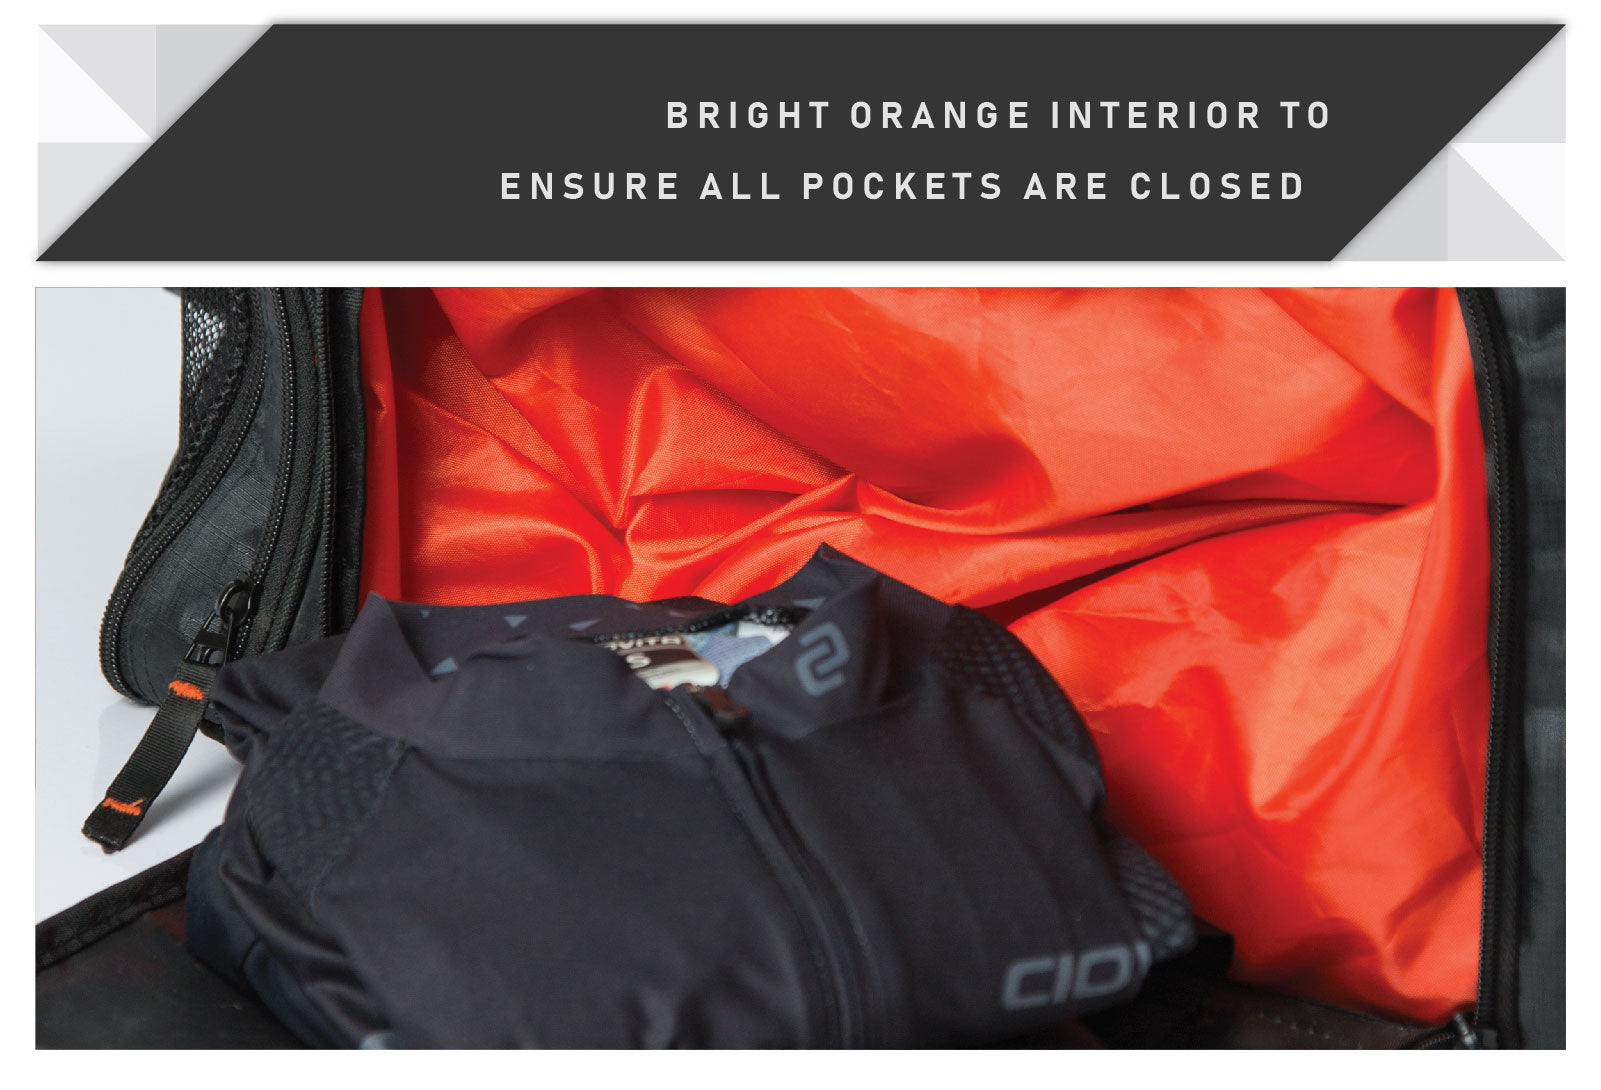 cycling kit bag bright orange interior